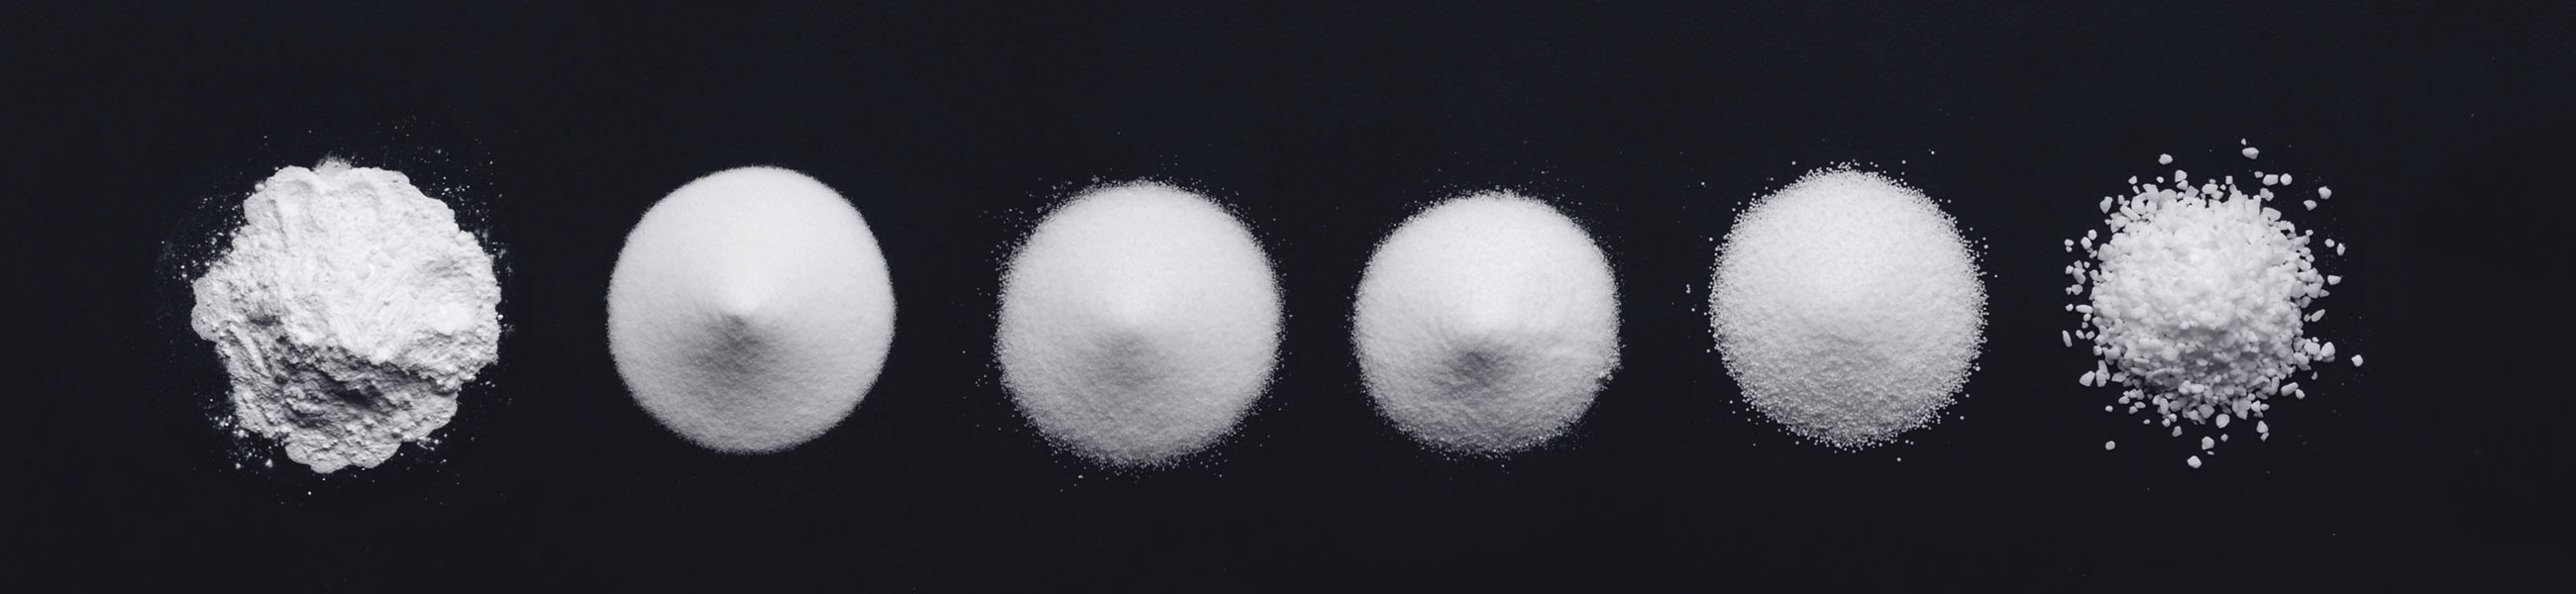 Grain sizes of Suprasel food salt: from microfine to coarse.